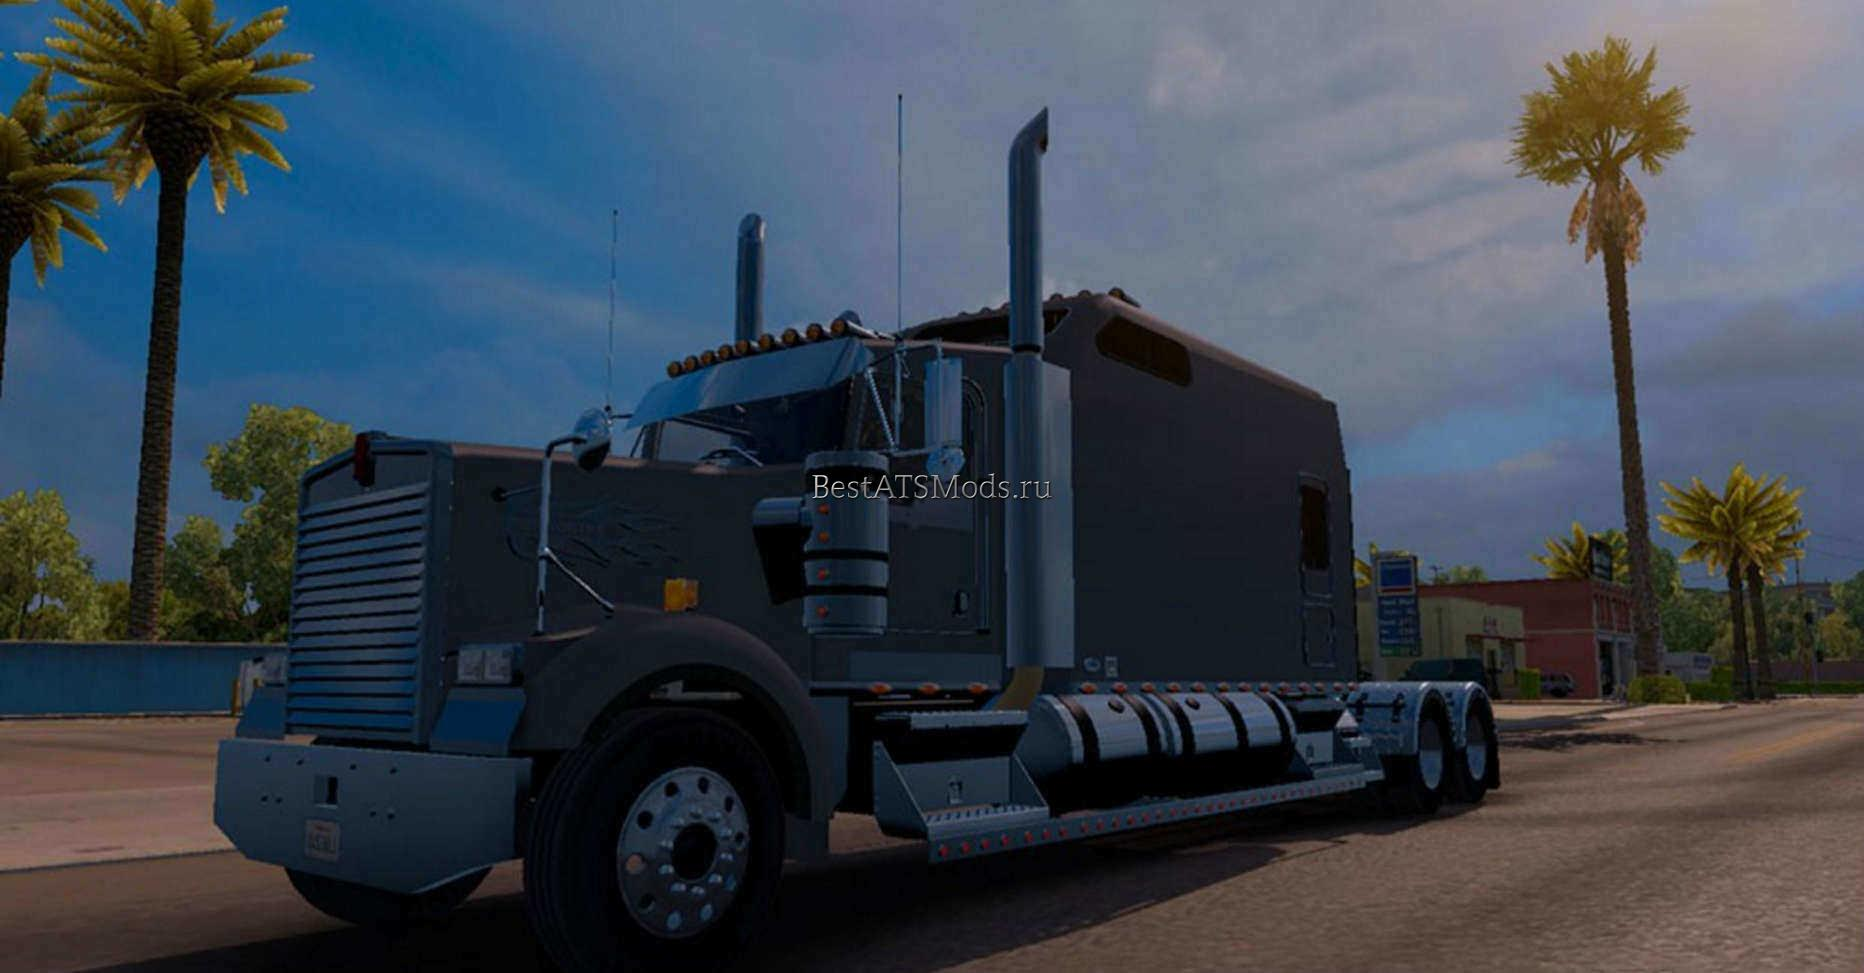 rsz_Мод_грузовик_kenworth_w900b_long_fixed_truck_american_truck_simulator